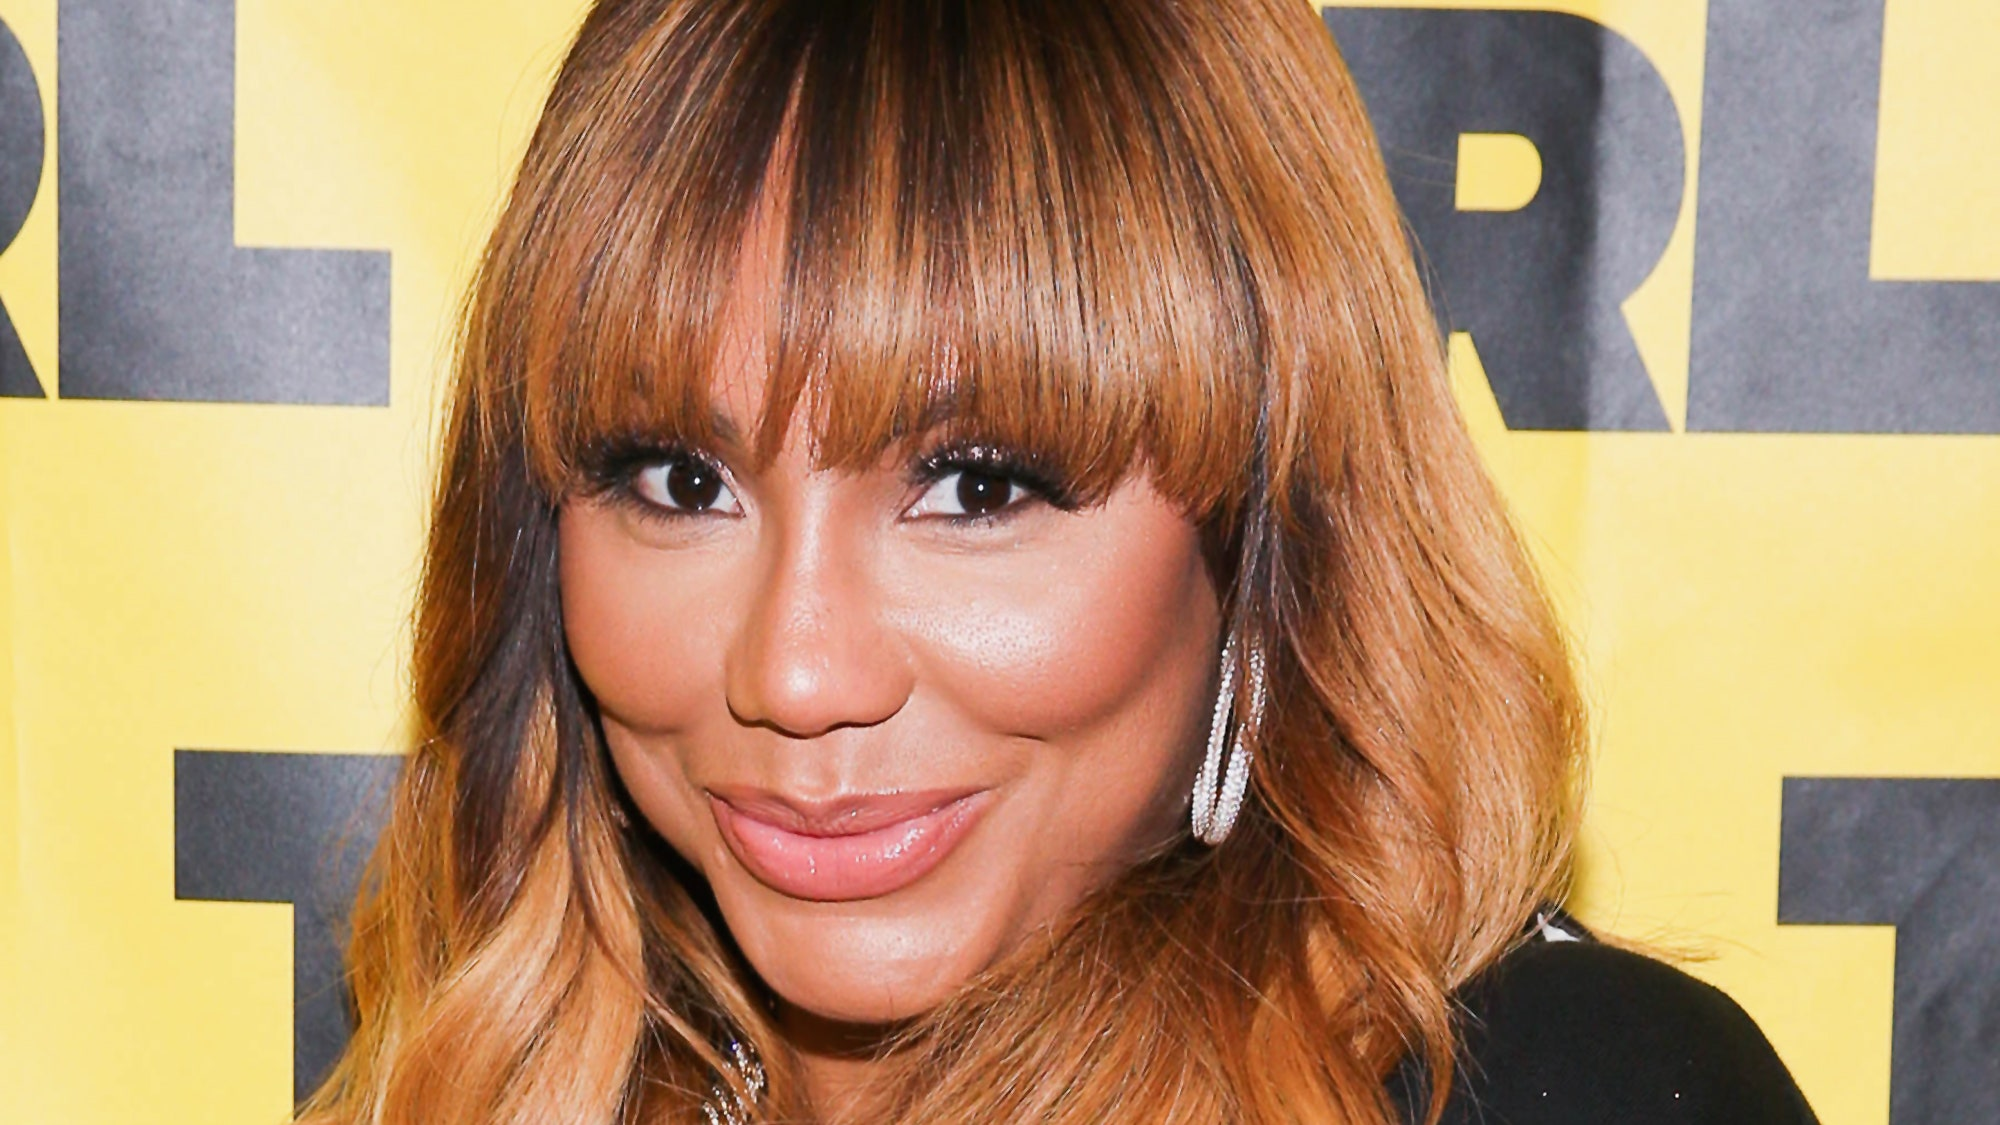 tamar-braxton-shares-a-video-for-nye-and-fans-could-not-be-happier-to-see-her-doing-great